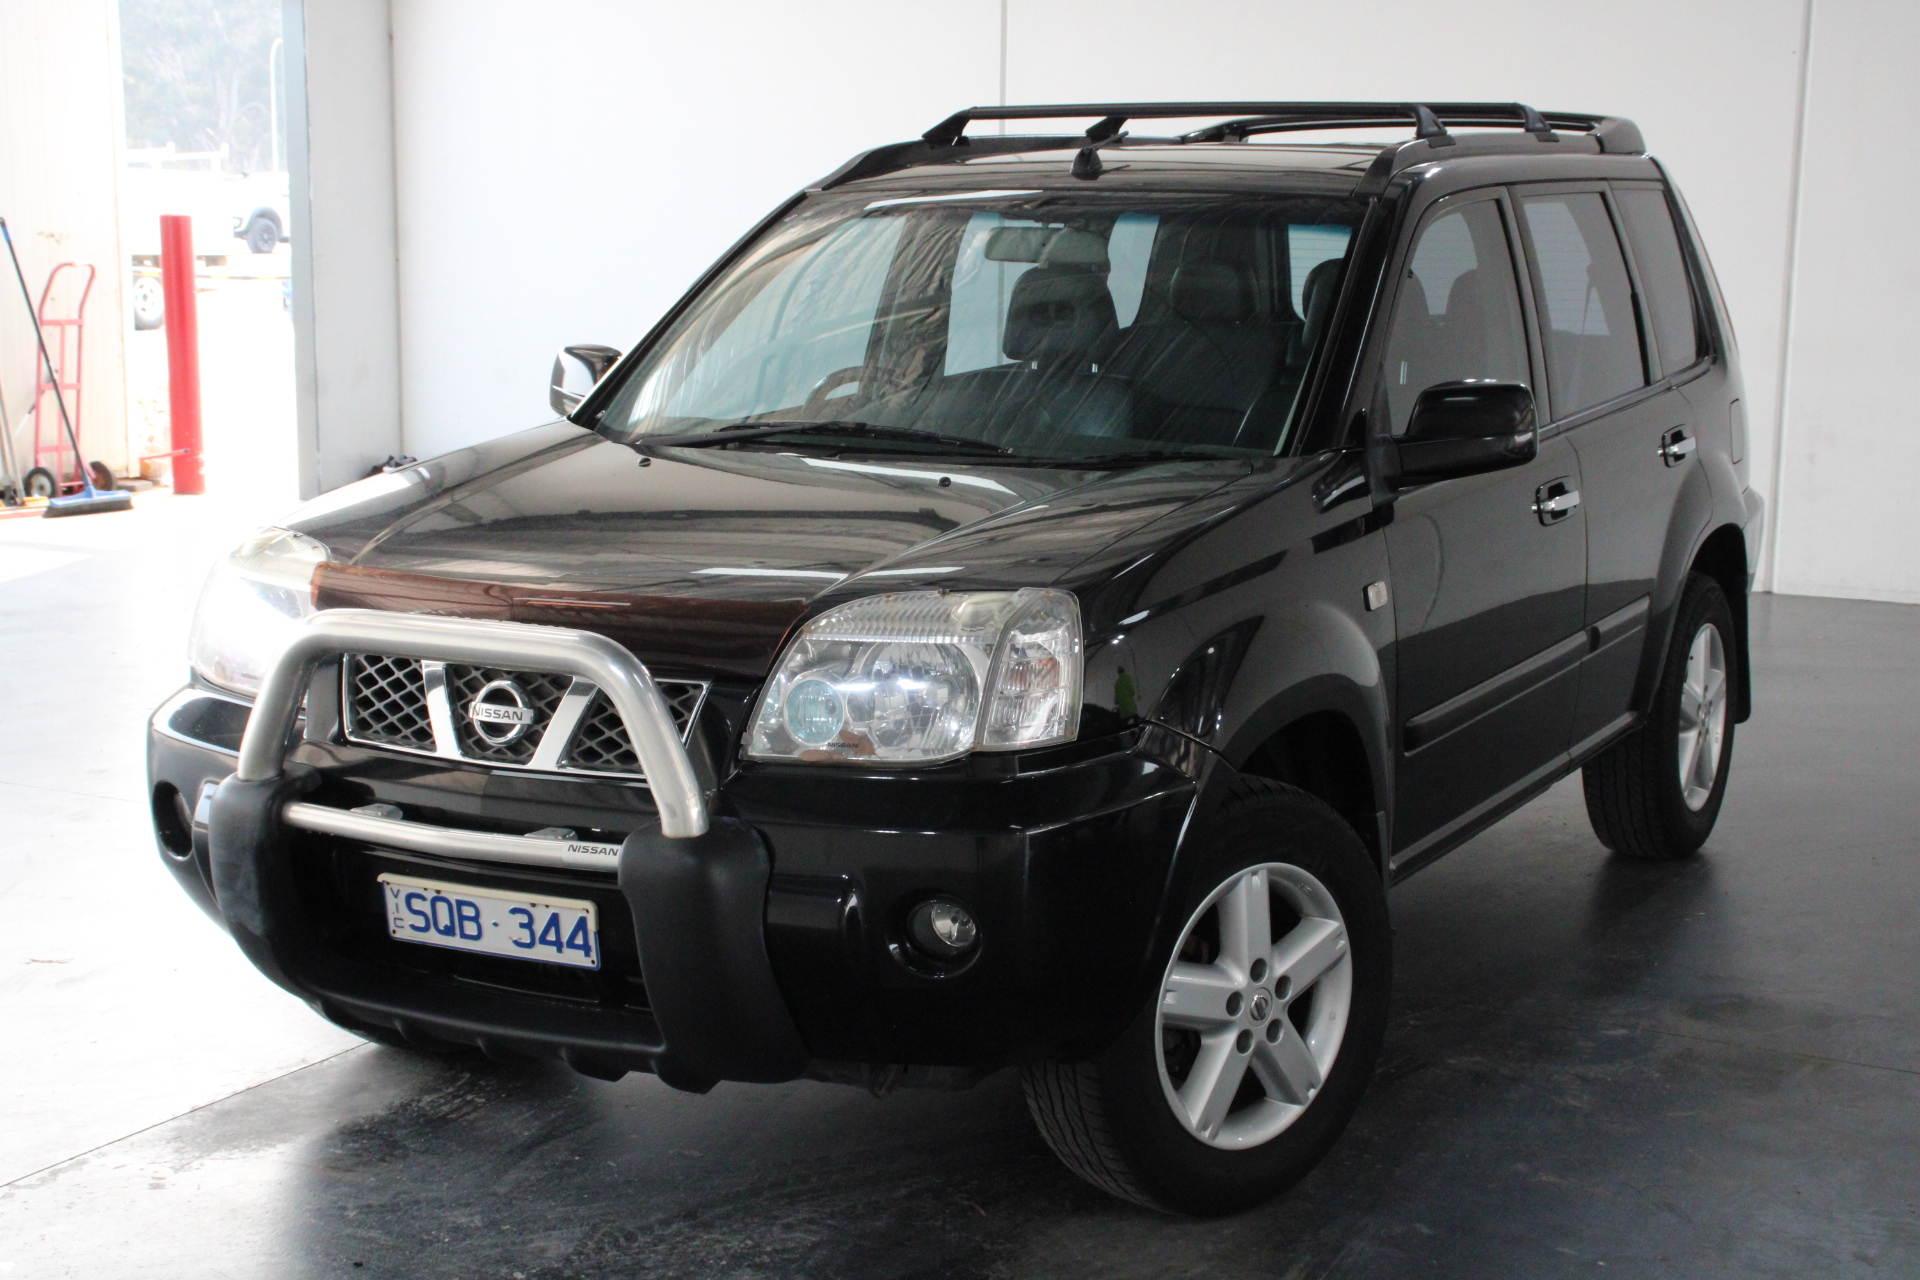 2004 Nissan X-Trail TI Luxury T30 Automatic Wagon